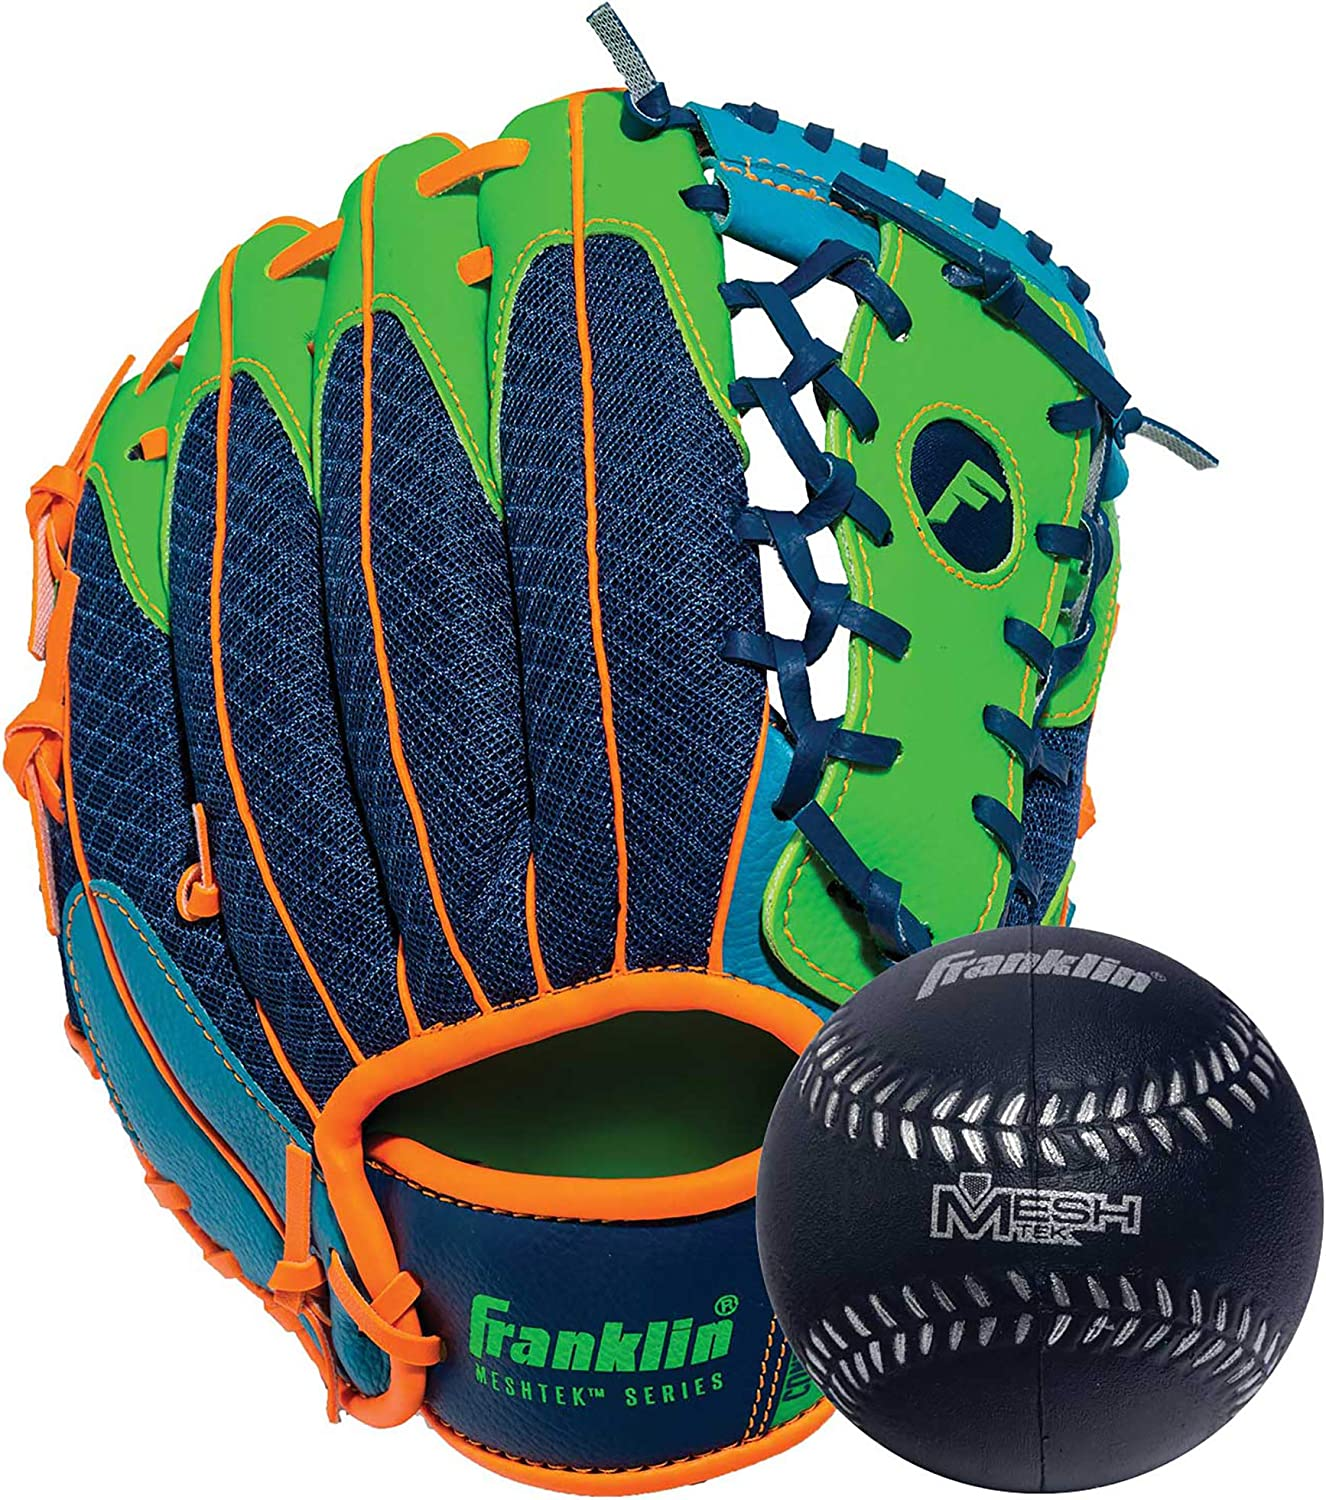 Franklin Sports Teeball Glove and - Set Ball Our shop Max 57% OFF OFFers the best service Glo Meshtek